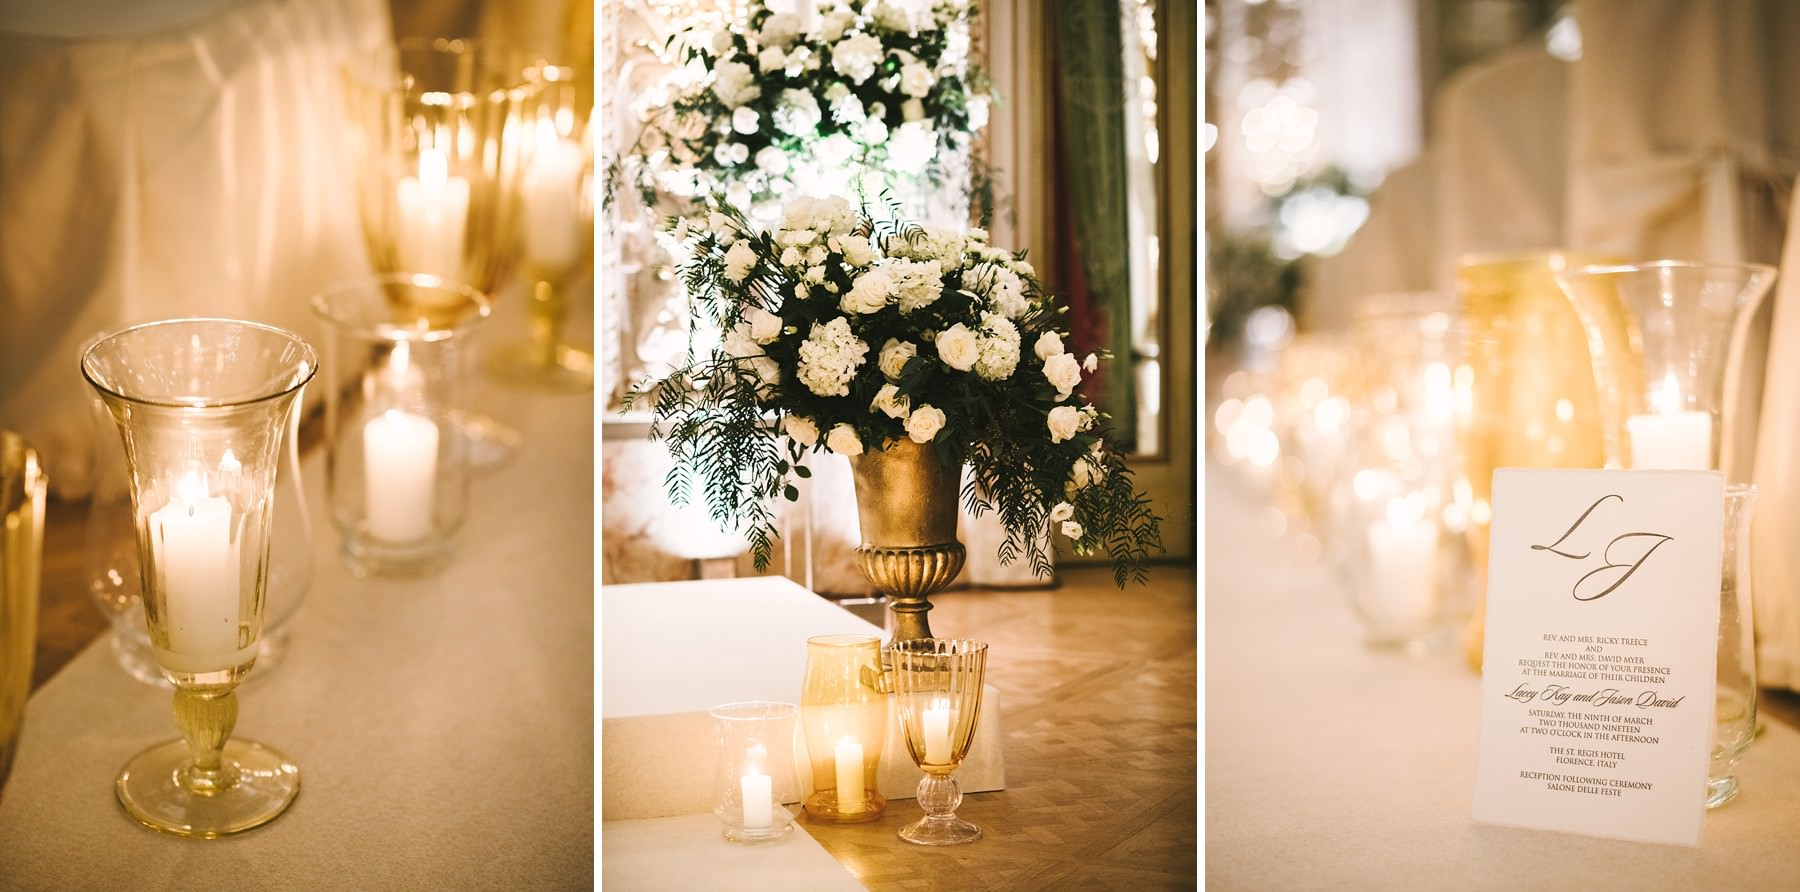 Amazing and elegant destination wedding decor at St. Regis wedding in Florence at Sala delle Feste ballroom